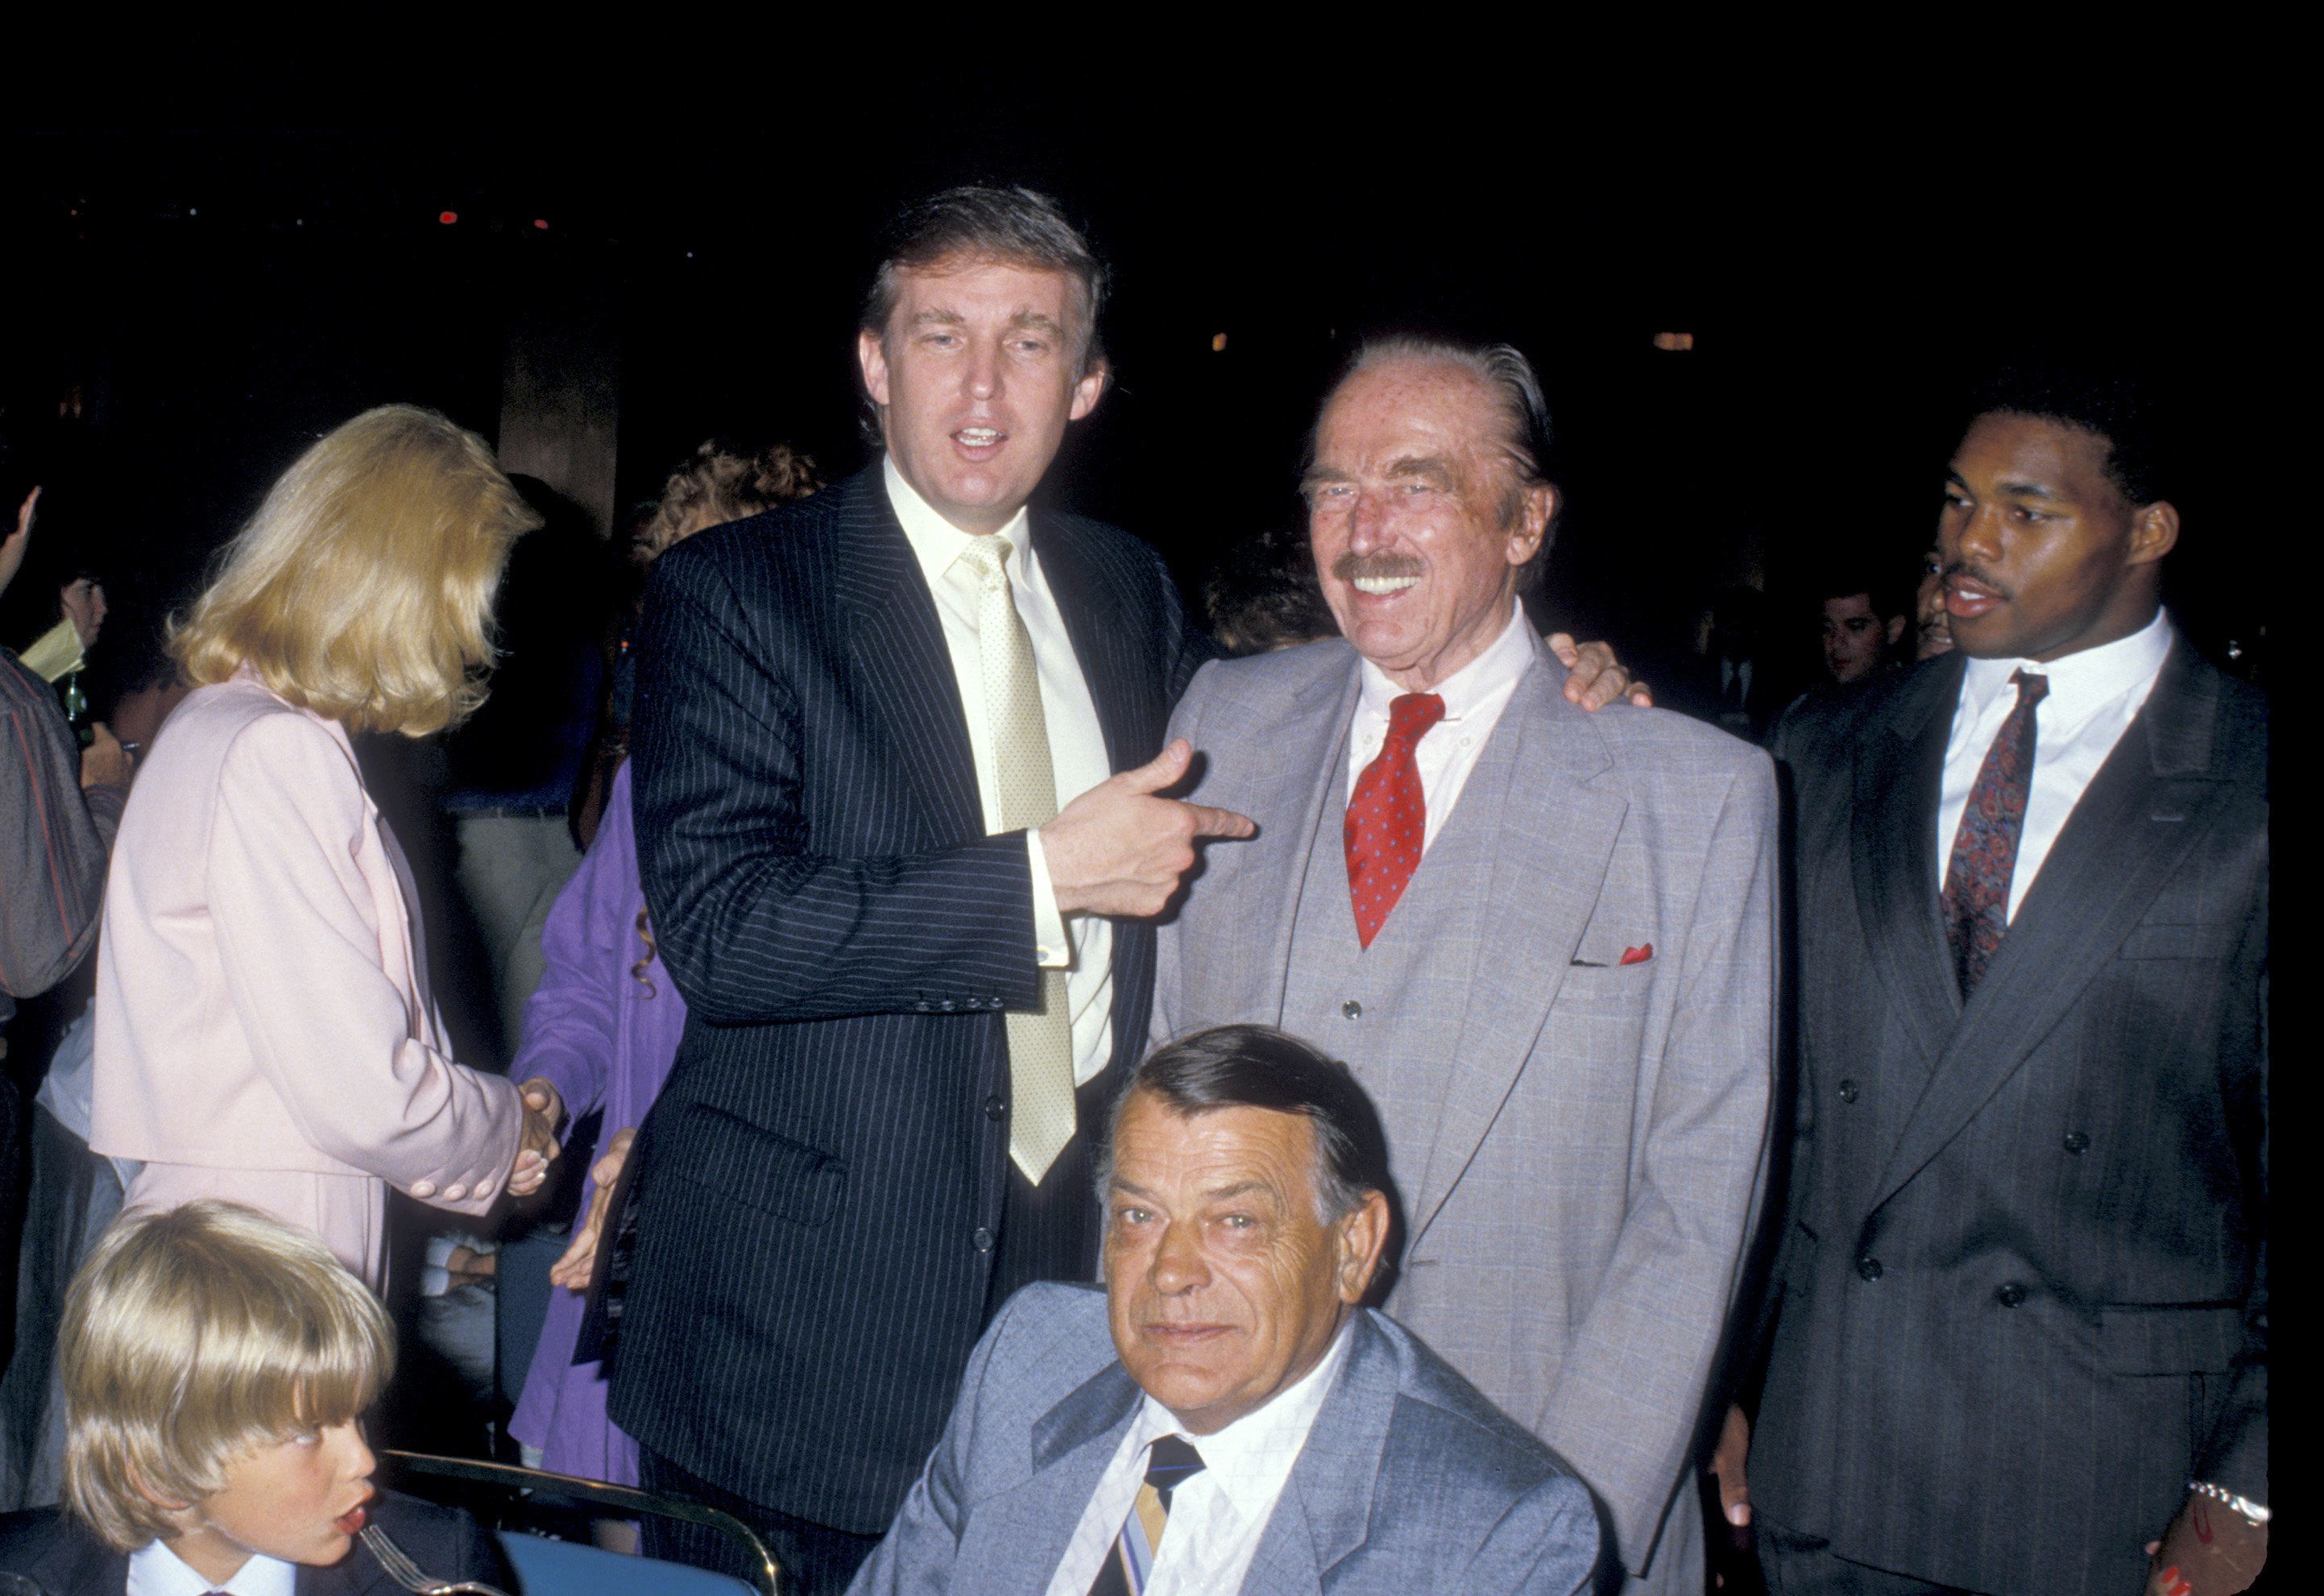 Donald Trump Jr., Donald Trump, Fred Trump (Ivana Trump's father) and Herschel Walker (Photo by Ron Galella, Ltd./WireImage)